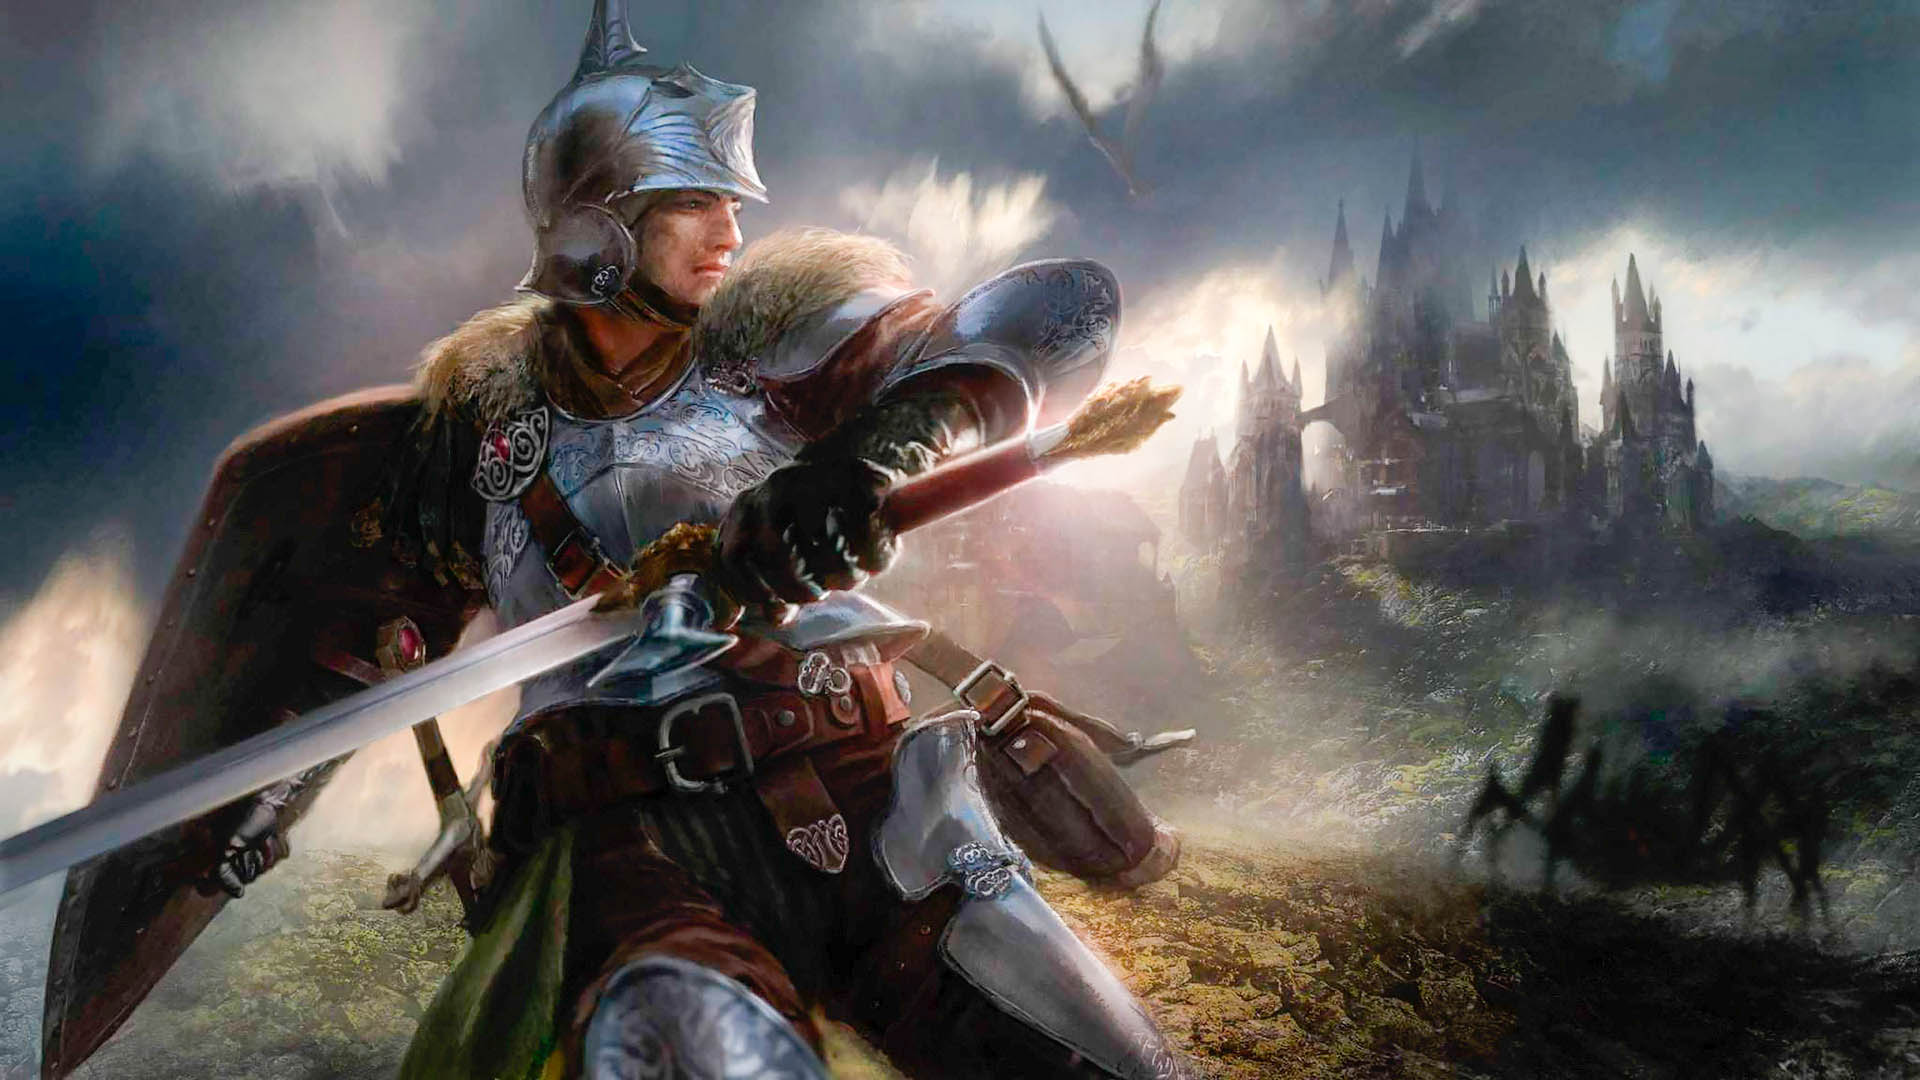 Top Girl Wallpaper Hd Dark Souls Ii Out Stunning Wallpapers High Quality All